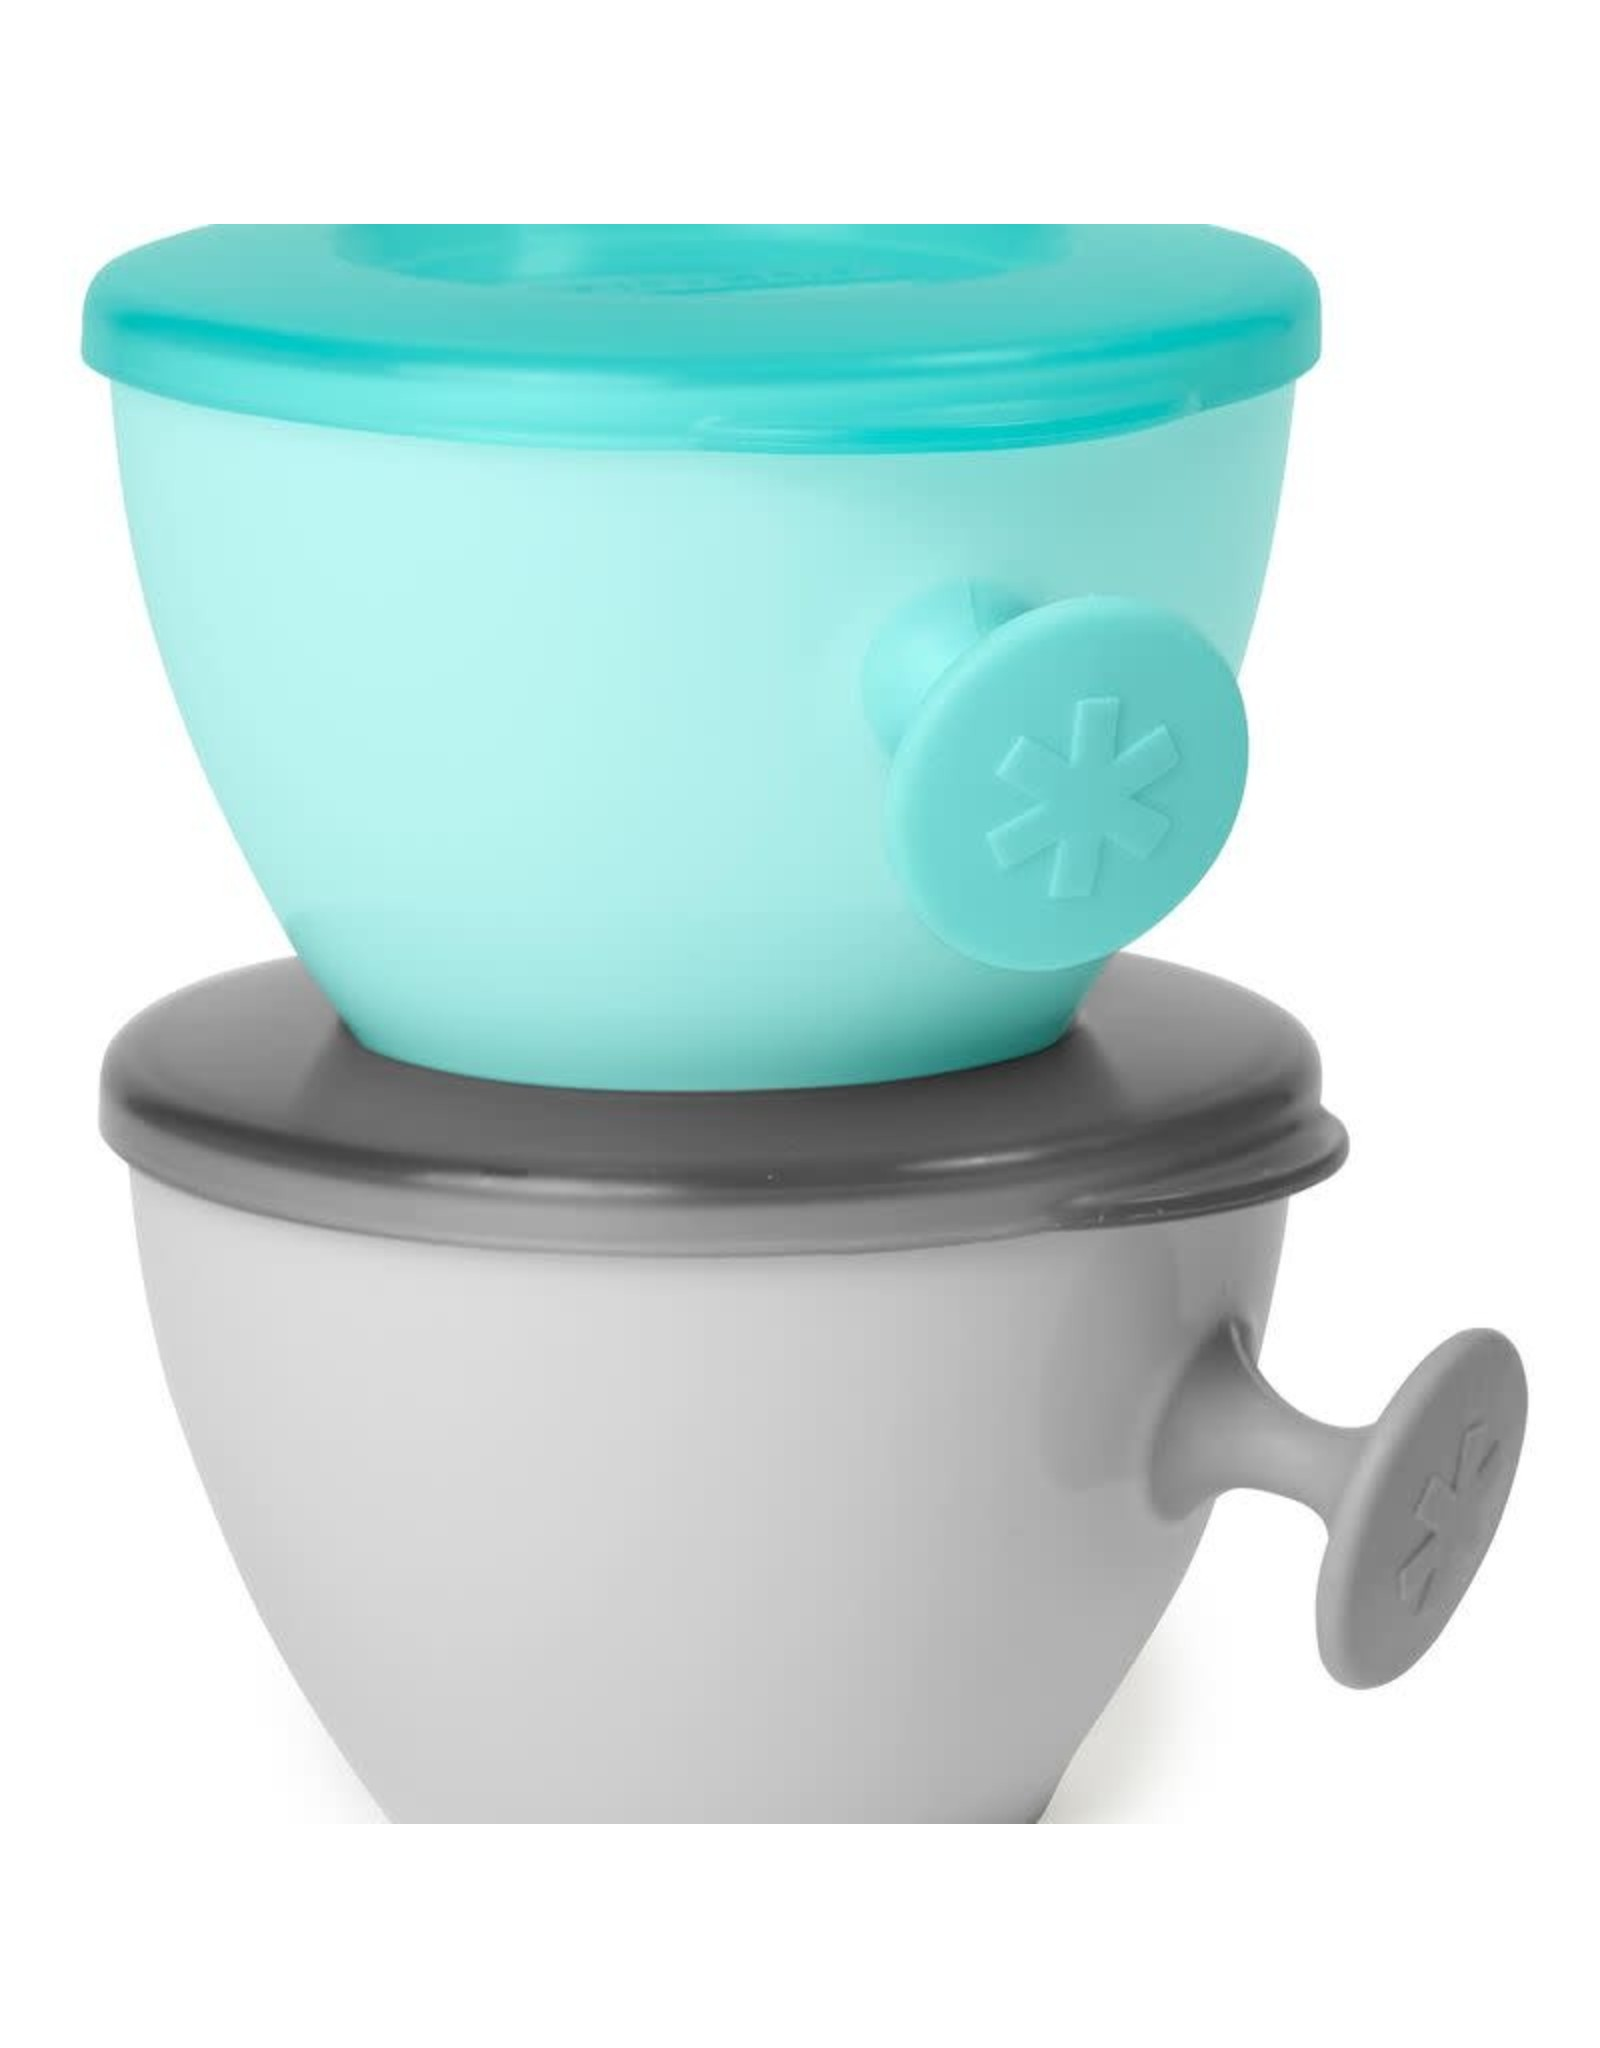 Skip Hop Easy Grab Two Bowl Set, Grey/Soft Teal